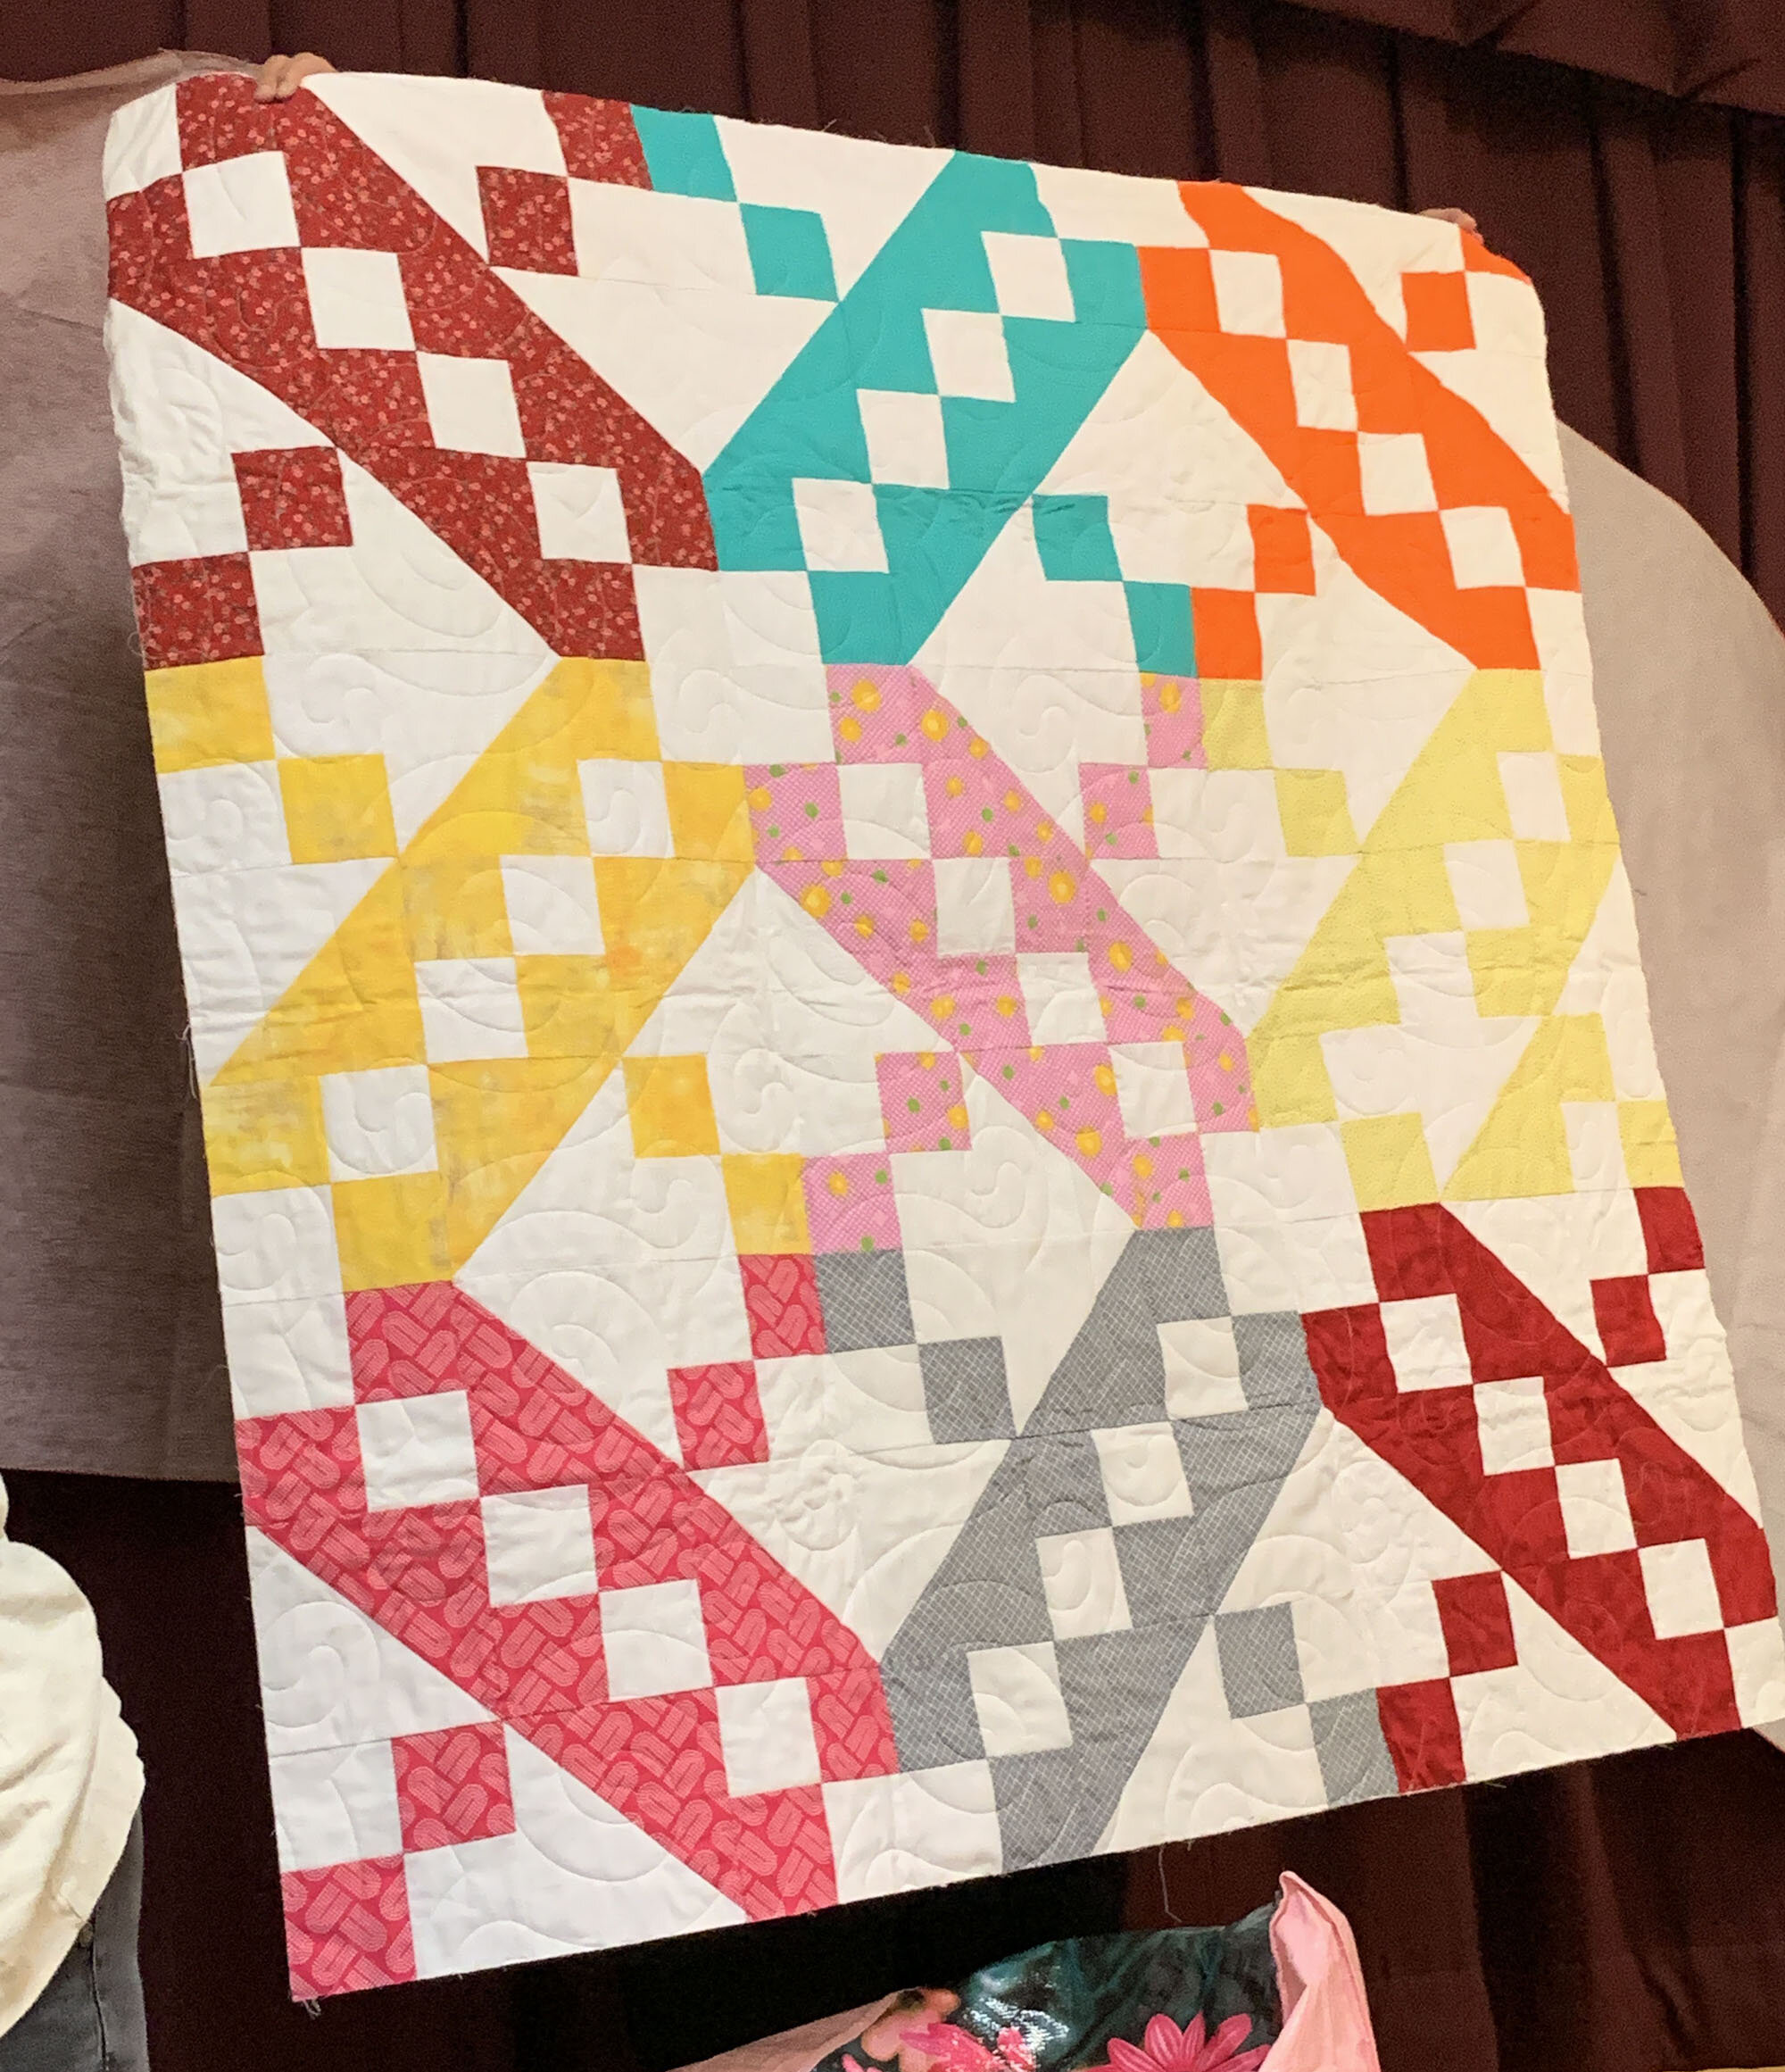 Jacob's Ladder ABC quilt by Robin Engelman